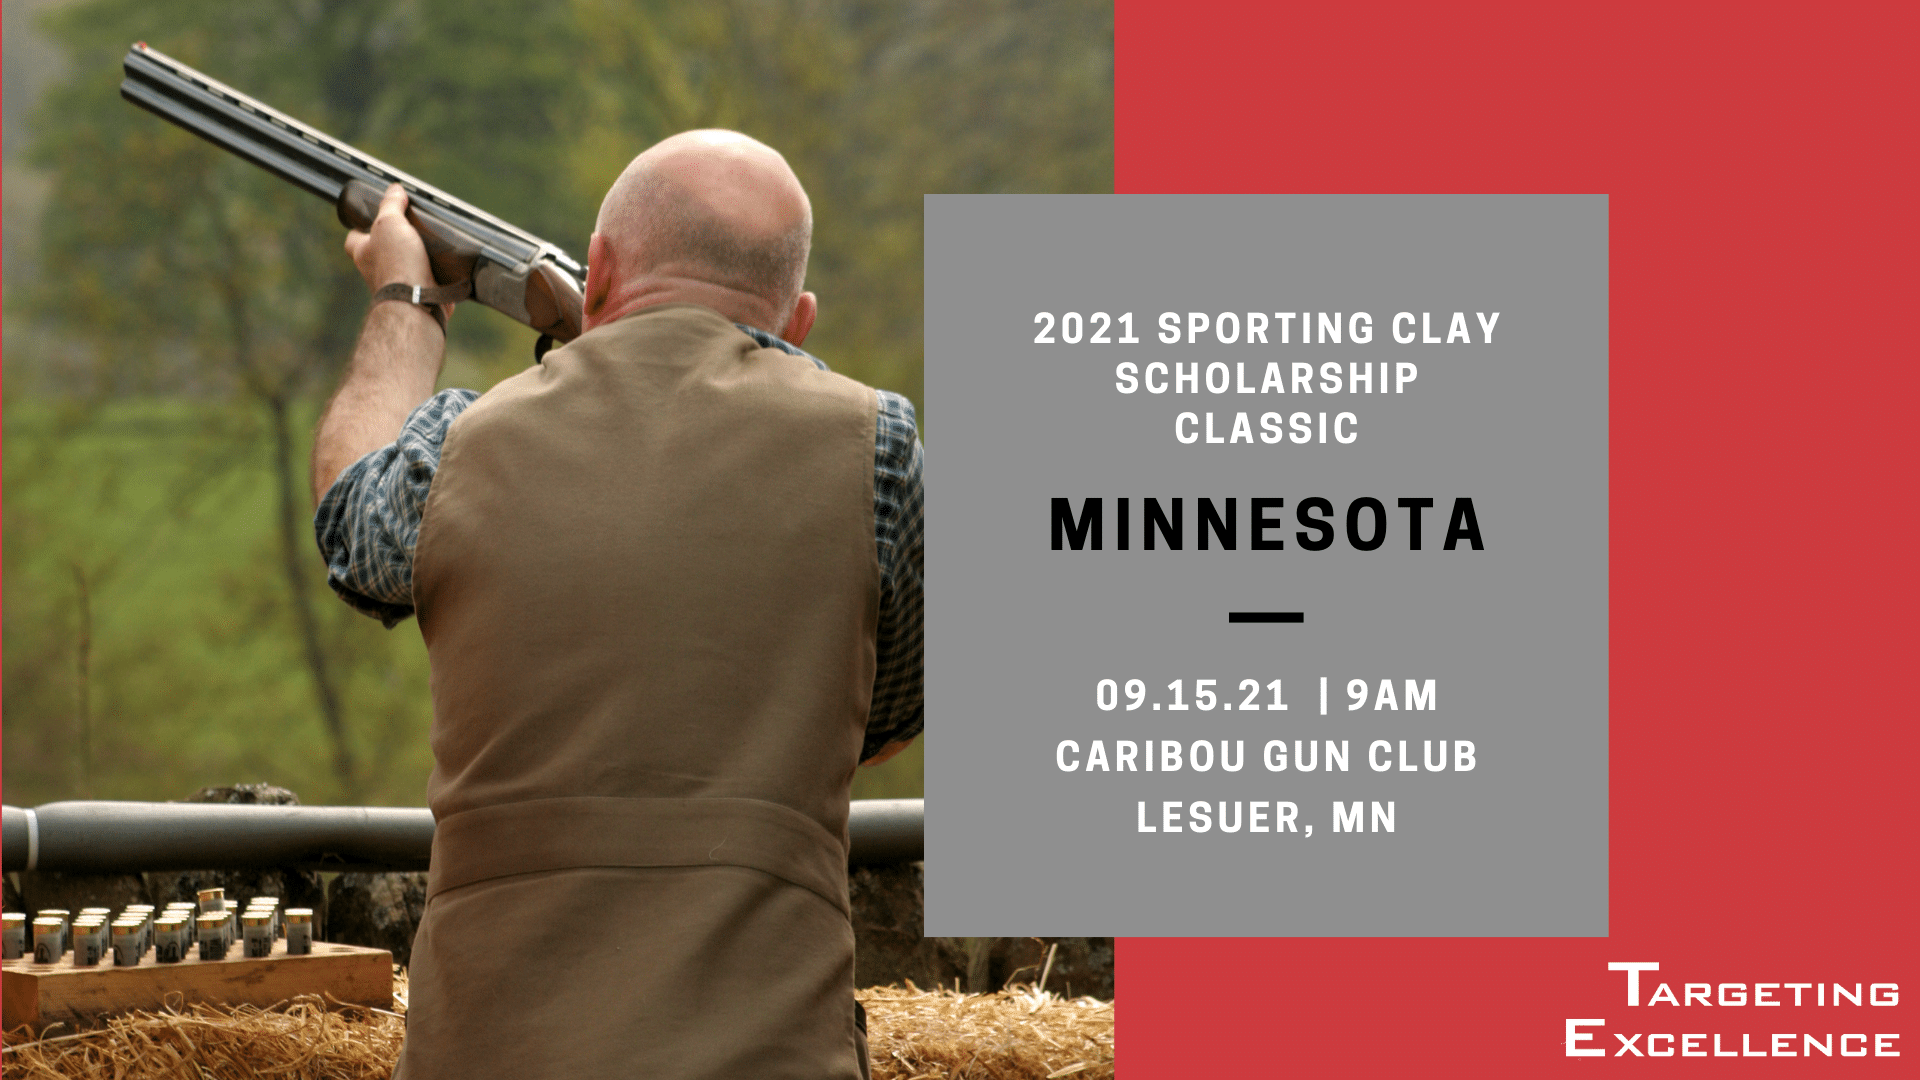 2021 Minnesota Targeting Excellence Sporting Clay Scholarship Classic